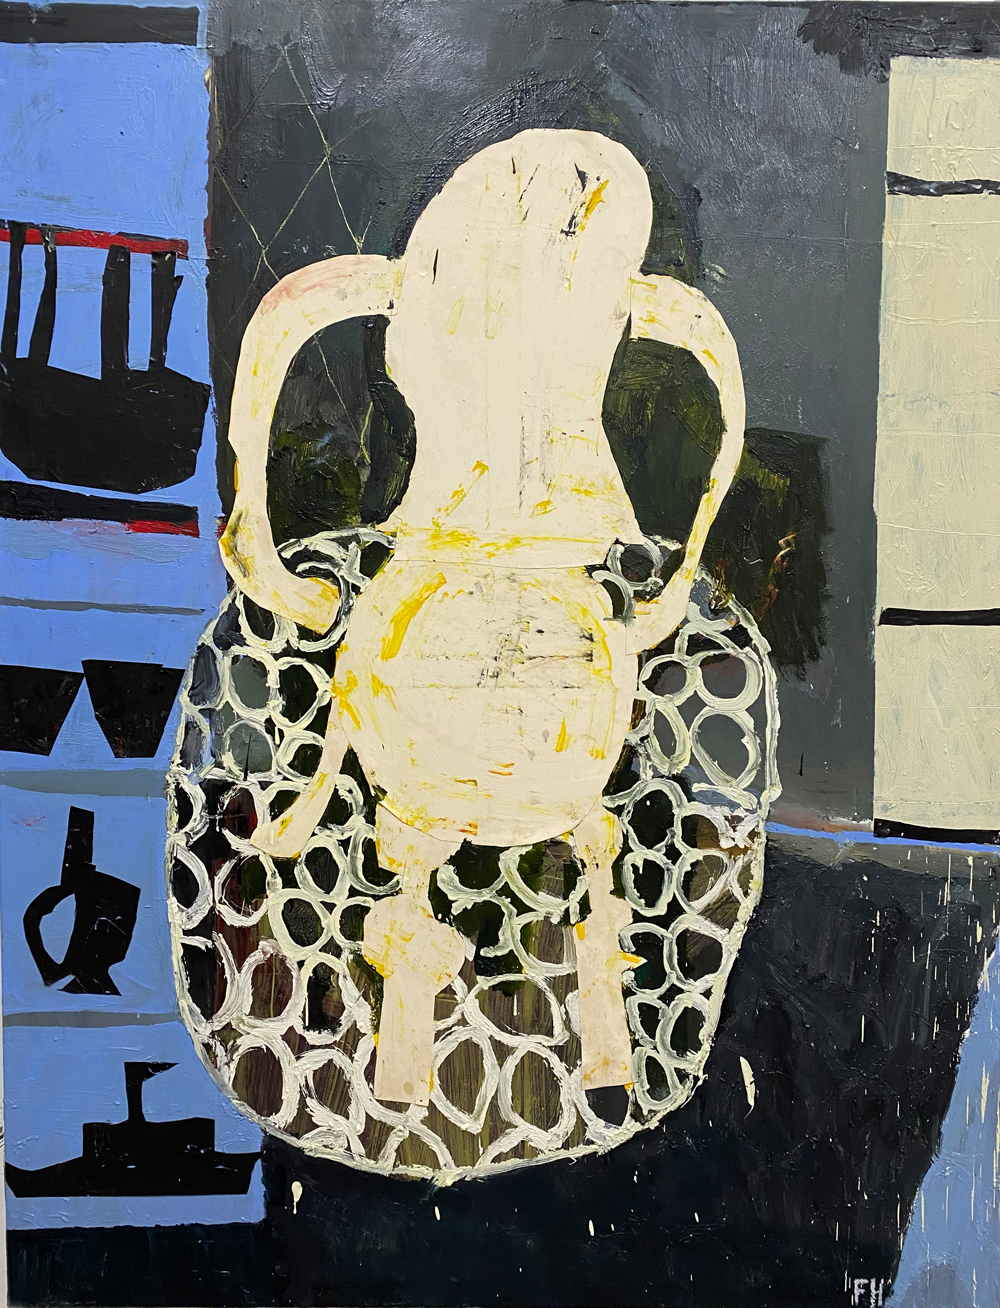 Florence-Hutchings,-The-Chair-at-Night,-2019-2020.-Oil-paint,-collage-and-oil-bar-on-canvas.-180x140cm